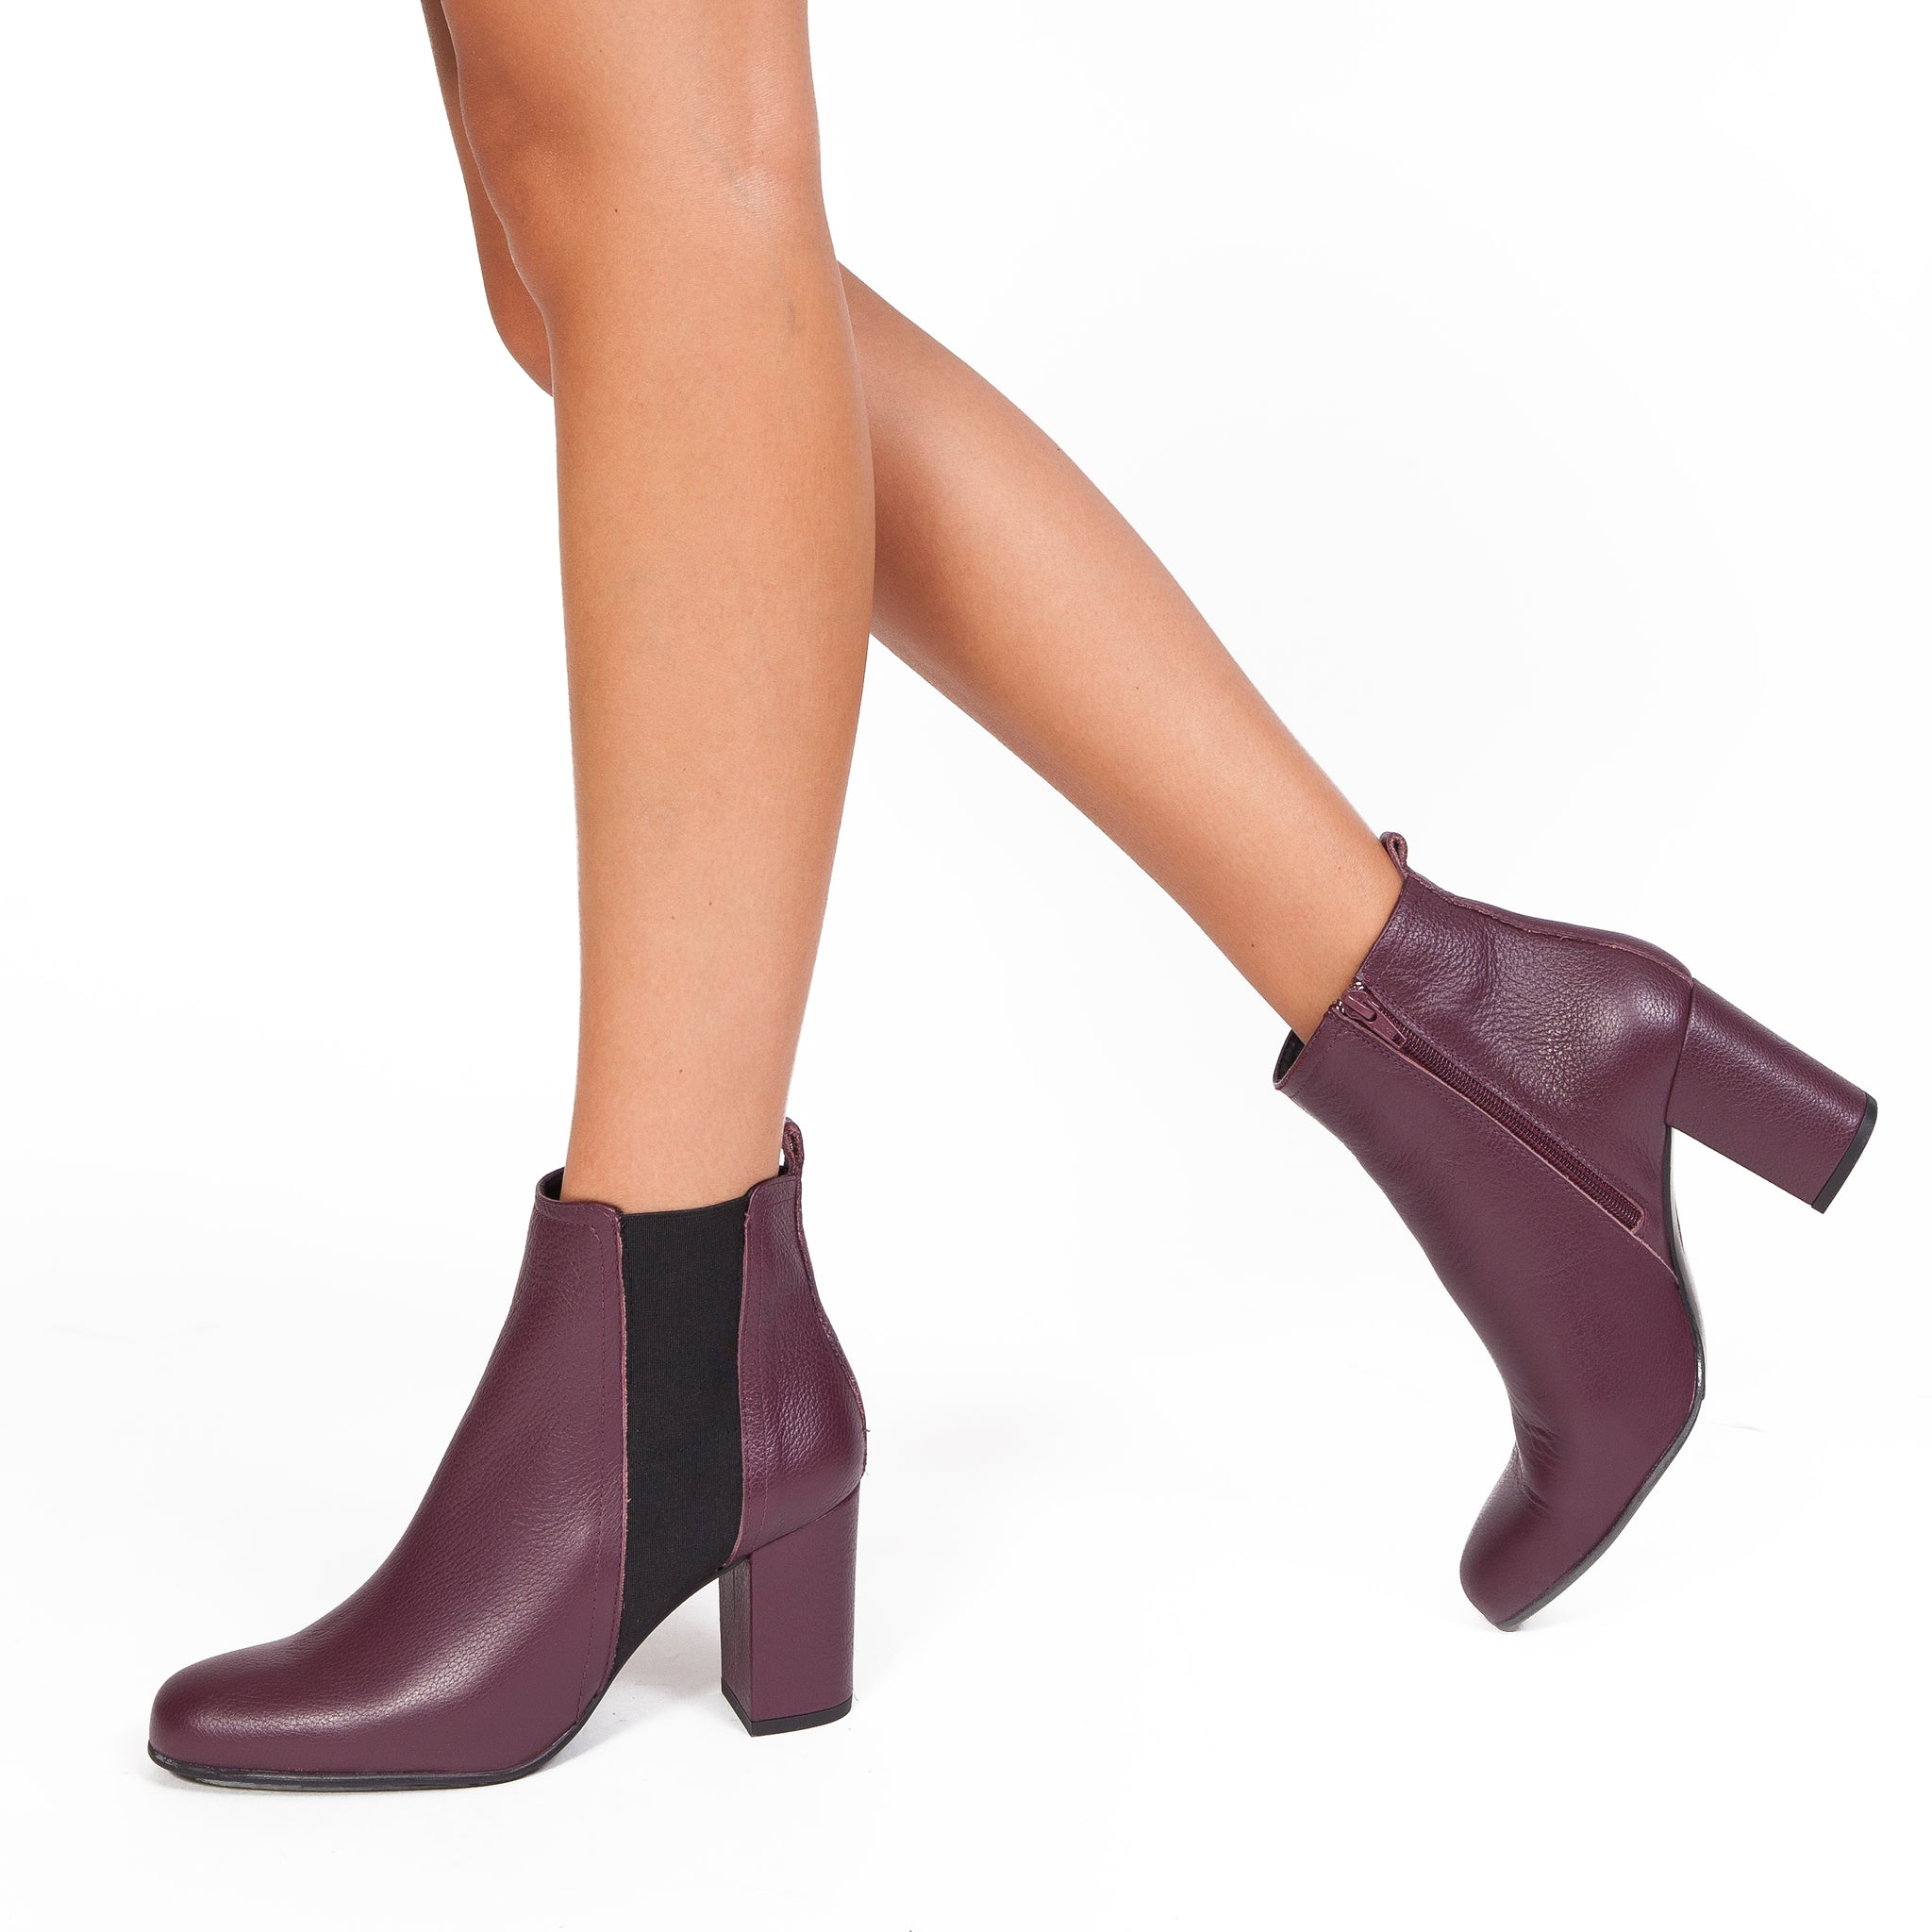 BOTTINES URBAN à talon BORDEAUX miMaO – miMaO FR 11683c7c9390